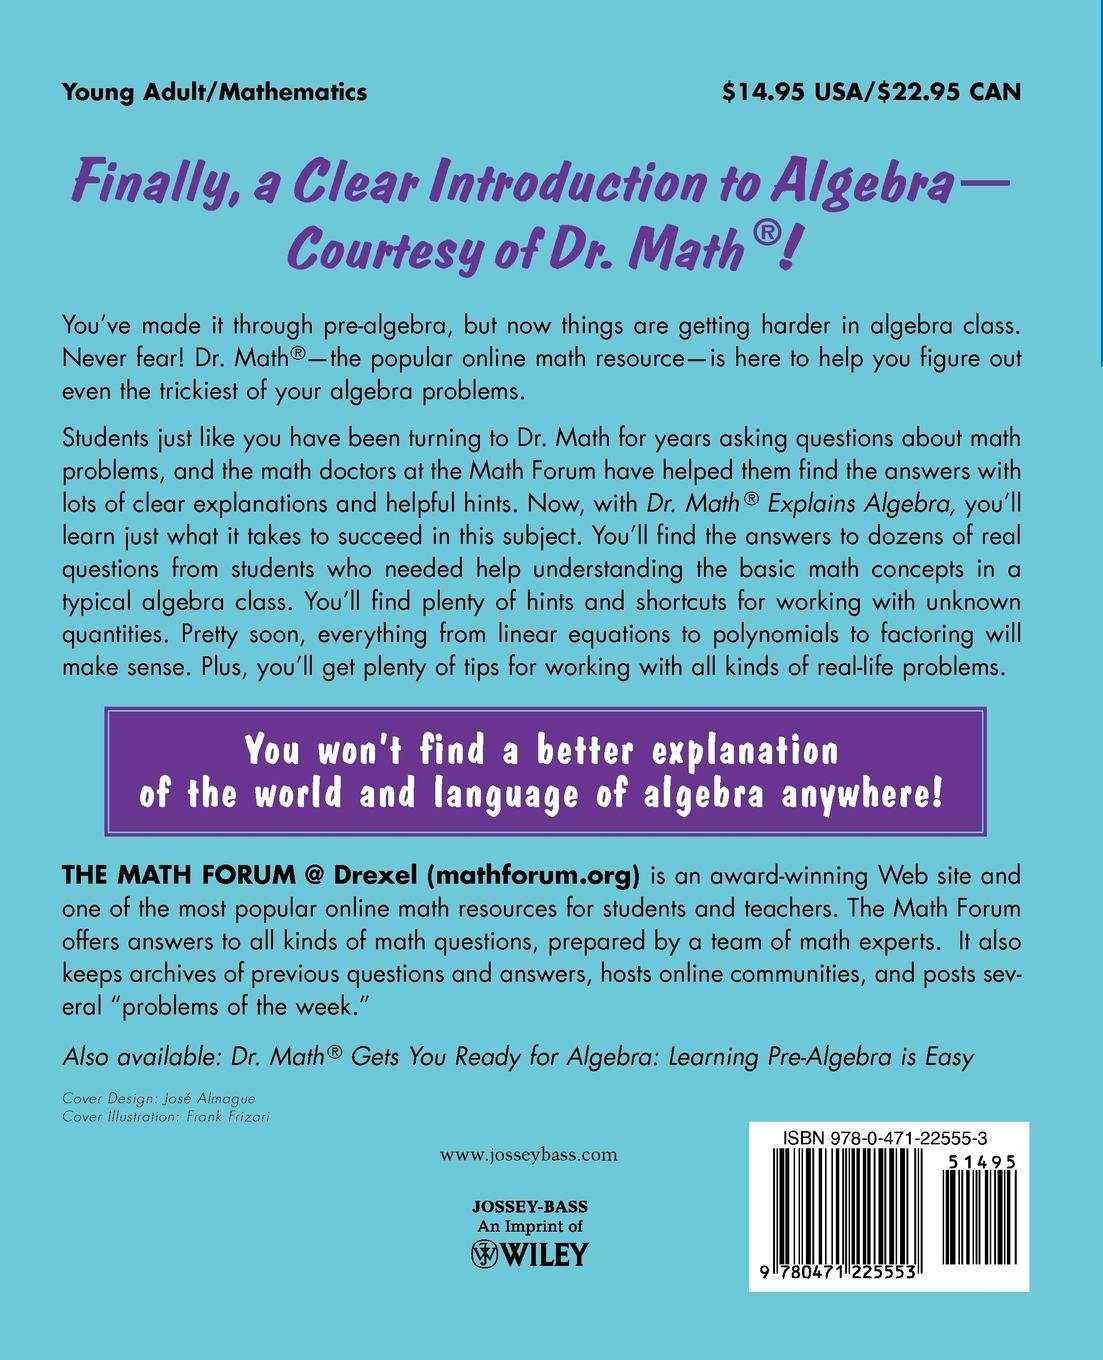 Dr. Math Explains Algebra: Learning Algebra Is Easy! Just Ask Dr ...